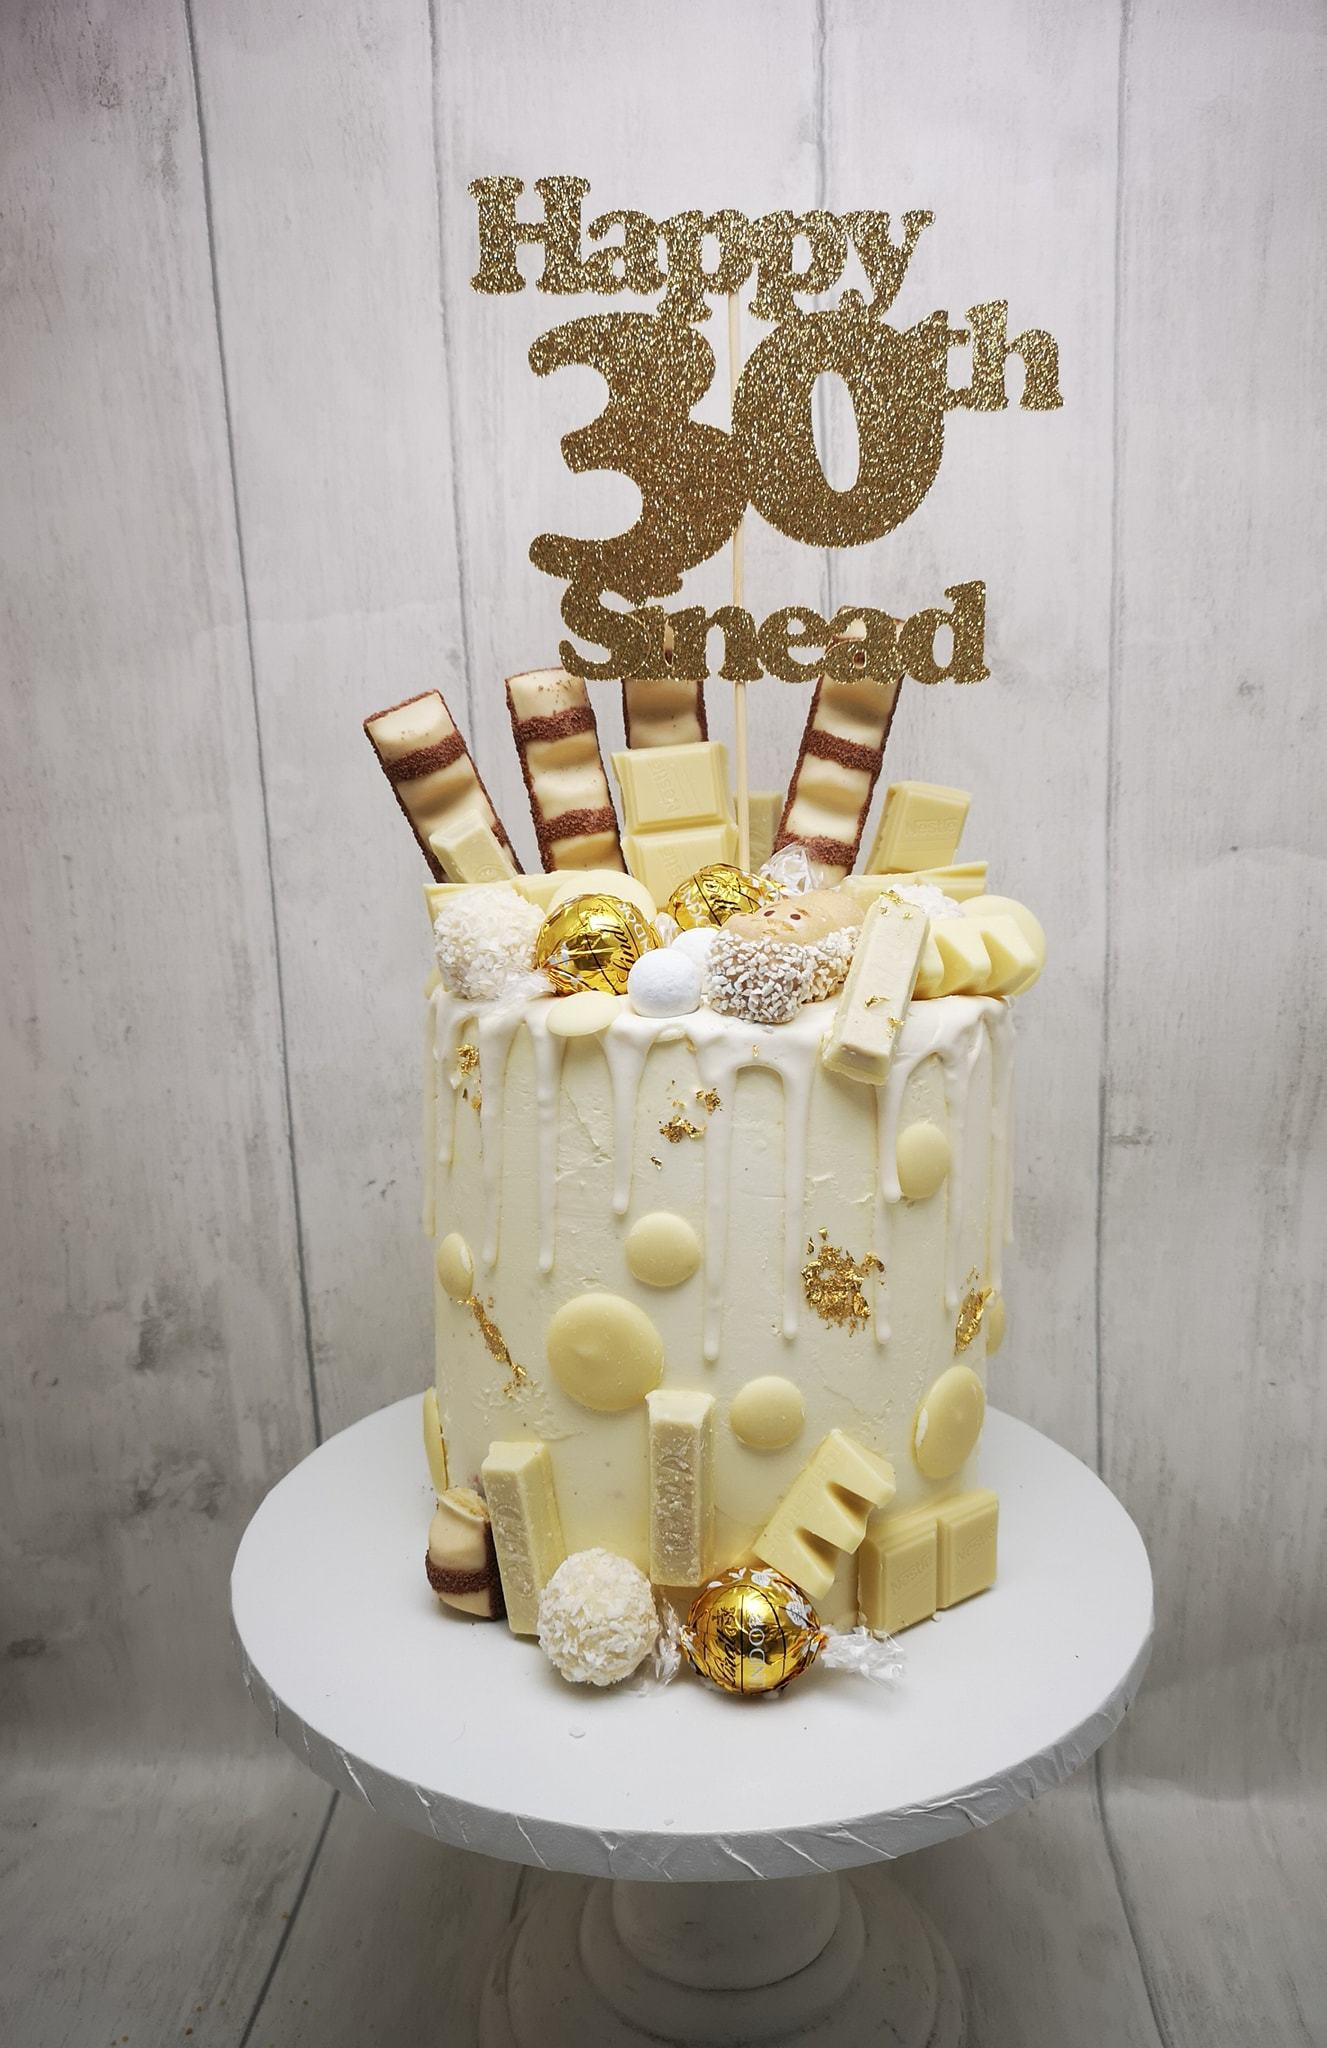 Admirable 30Th Birthday Cakes 40Th Birthday Cakes Must See Ideas Here Funny Birthday Cards Online Sheoxdamsfinfo